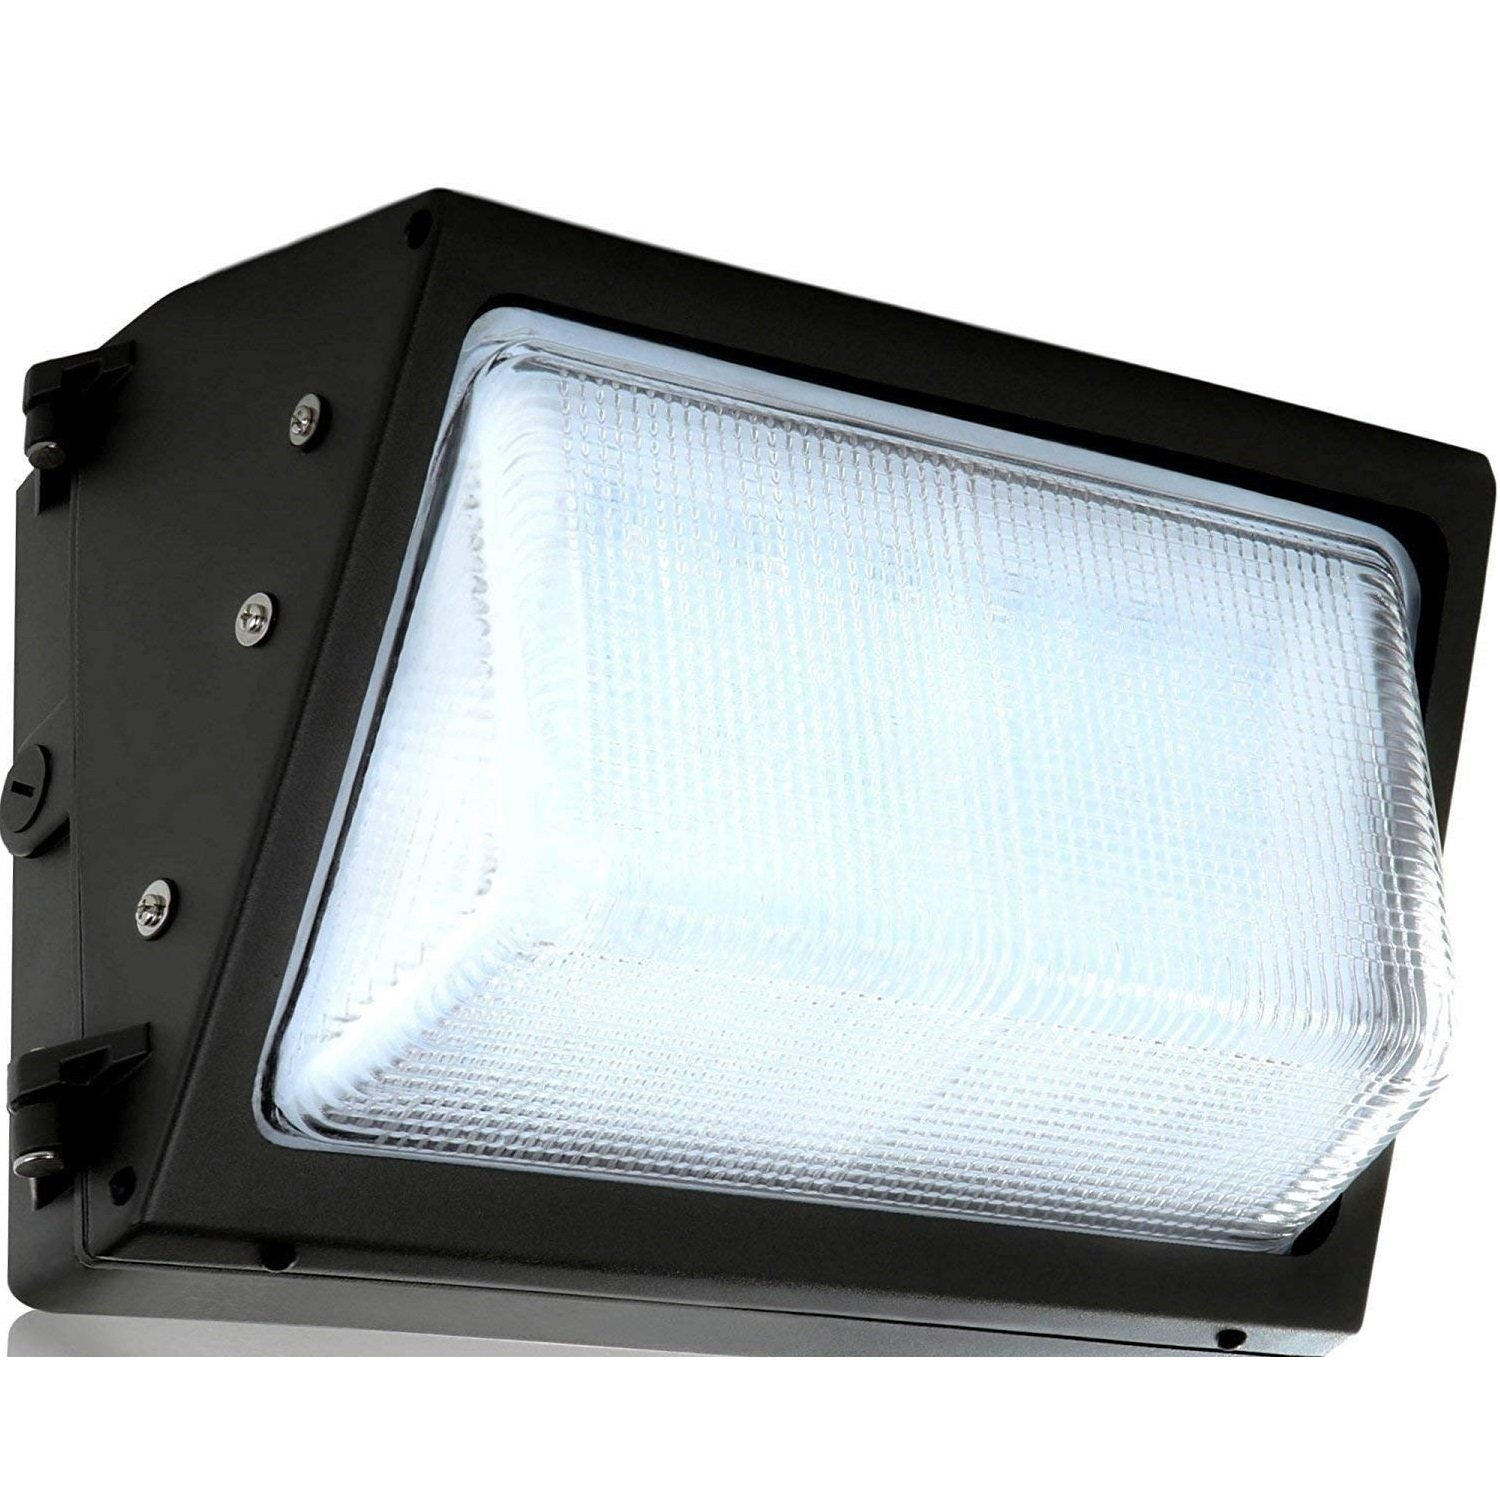 LED Wall-Pack Photo Cell - 40W 5000K Commercial Outdoor Light Fixture ( Out-Door Dusk To Dawn Sensor Security Porch Lighting For Industrial Out-Side photocell )